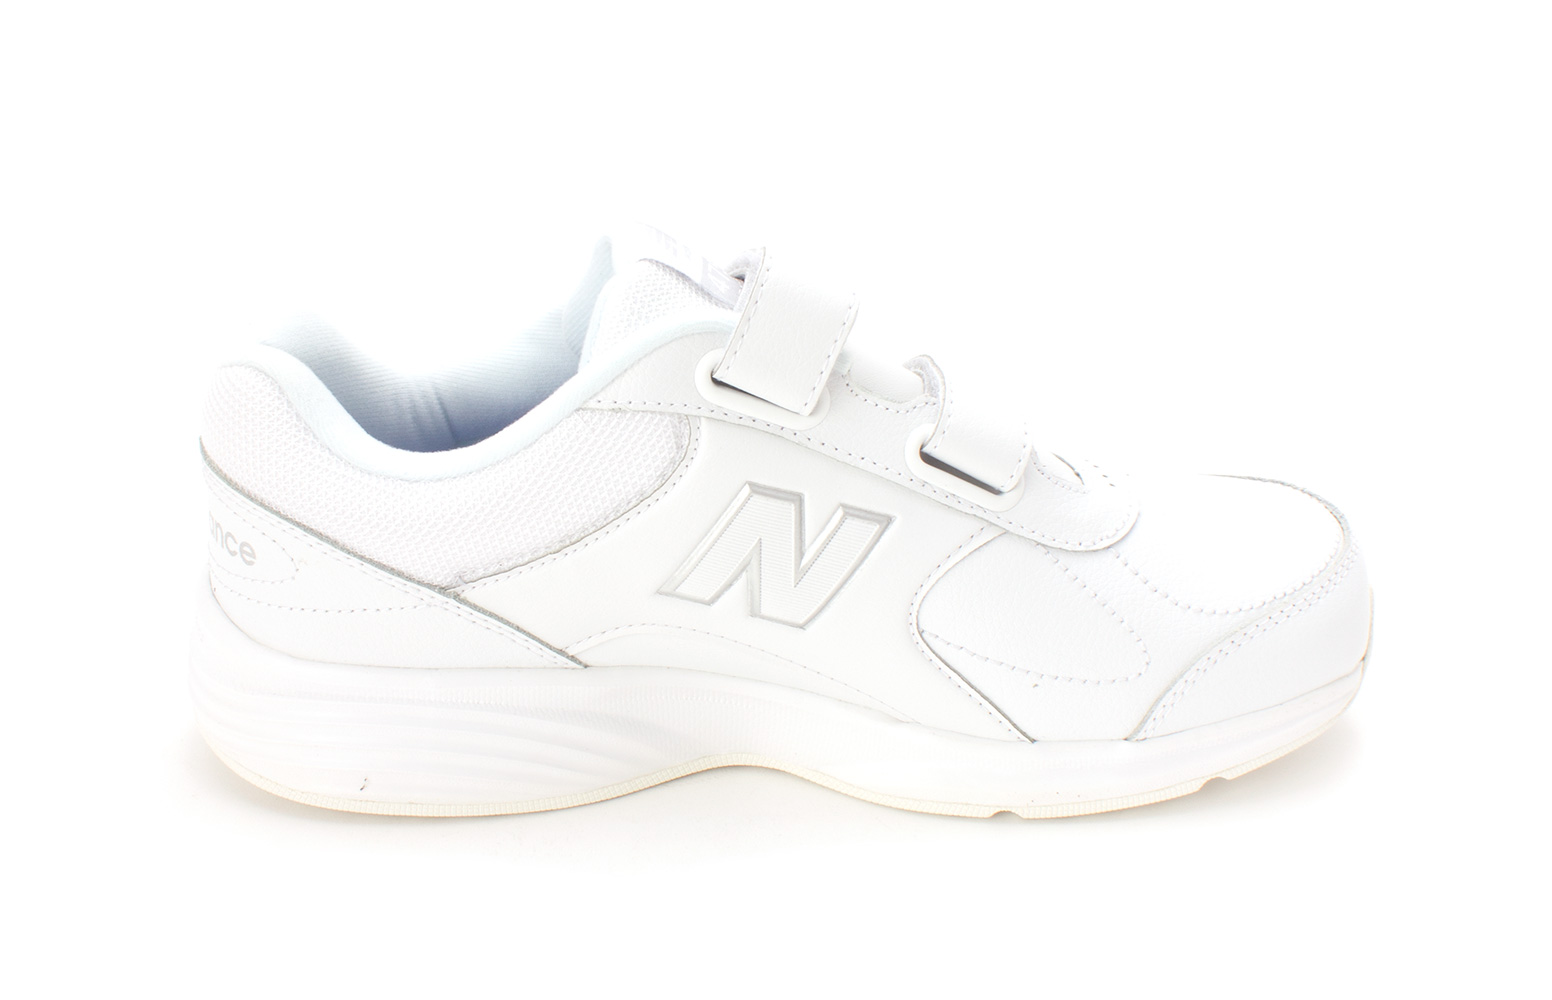 New Balance Mens 475wv2 Low Top Velcro Walking Shoes White Size 7.5